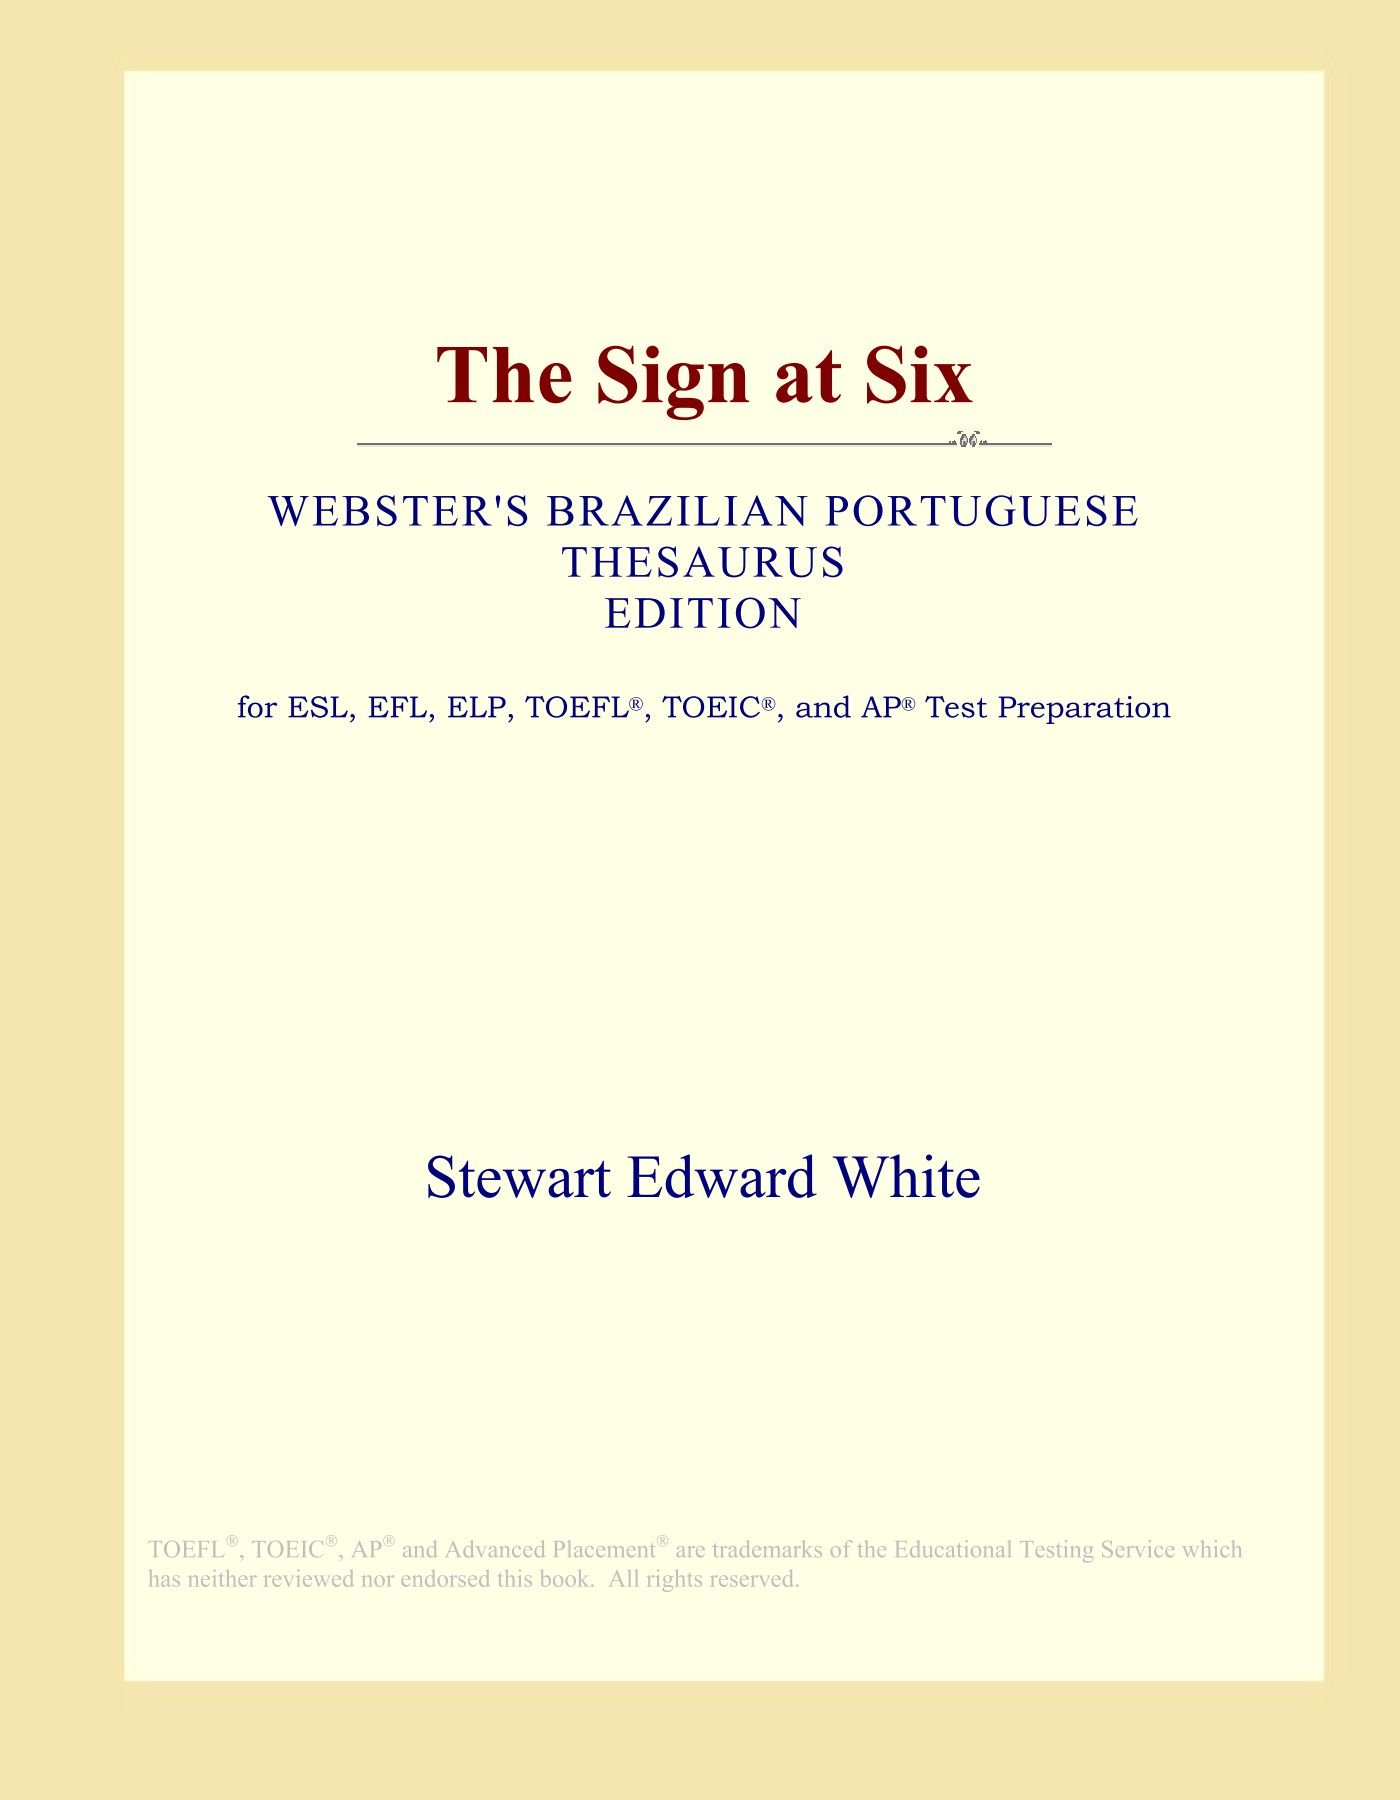 Download The Sign at Six (Webster's Brazilian Portuguese Thesaurus Edition) ebook